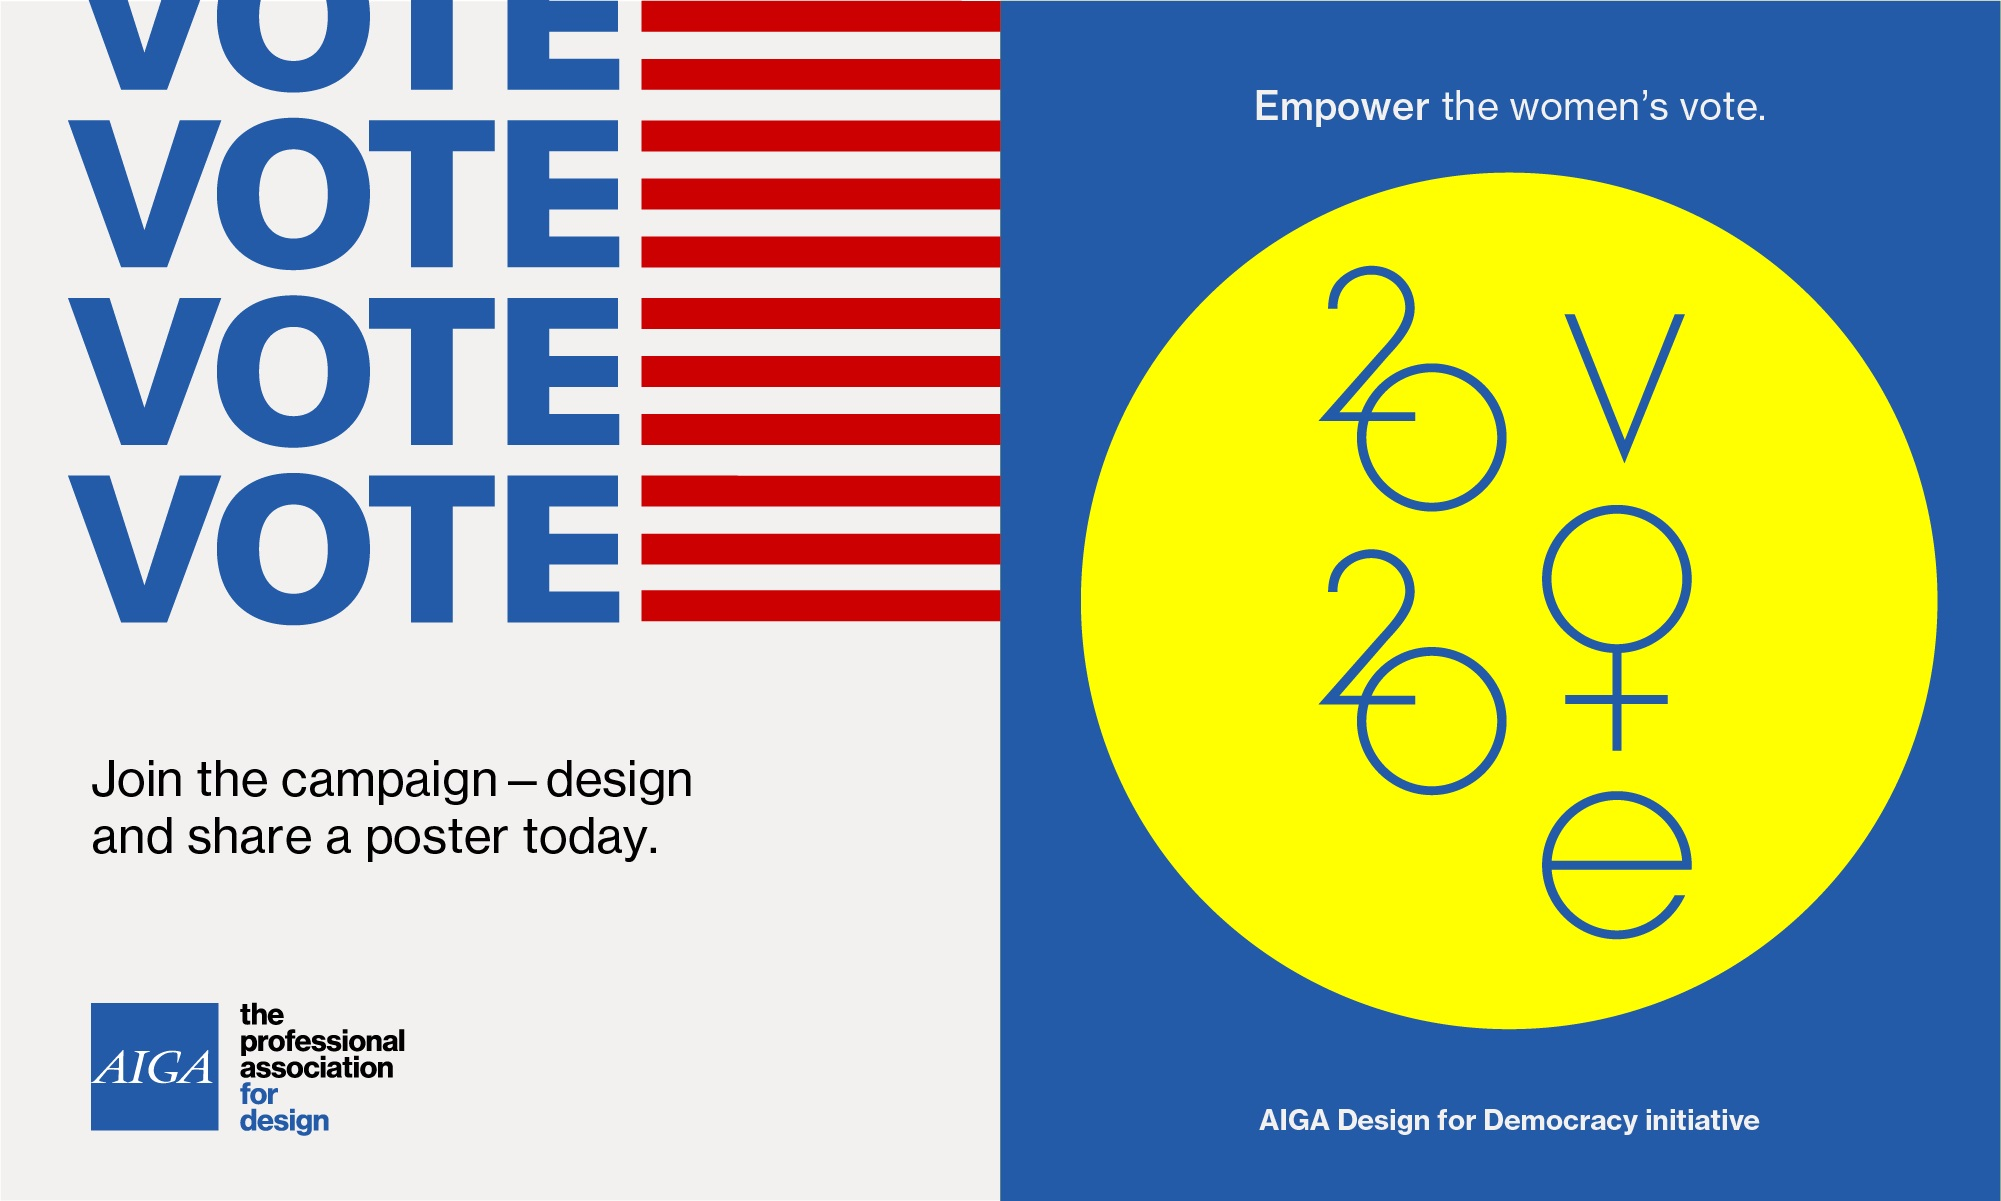 AIGA and other nonprofits partner to encourage people to Get Out the Vote.